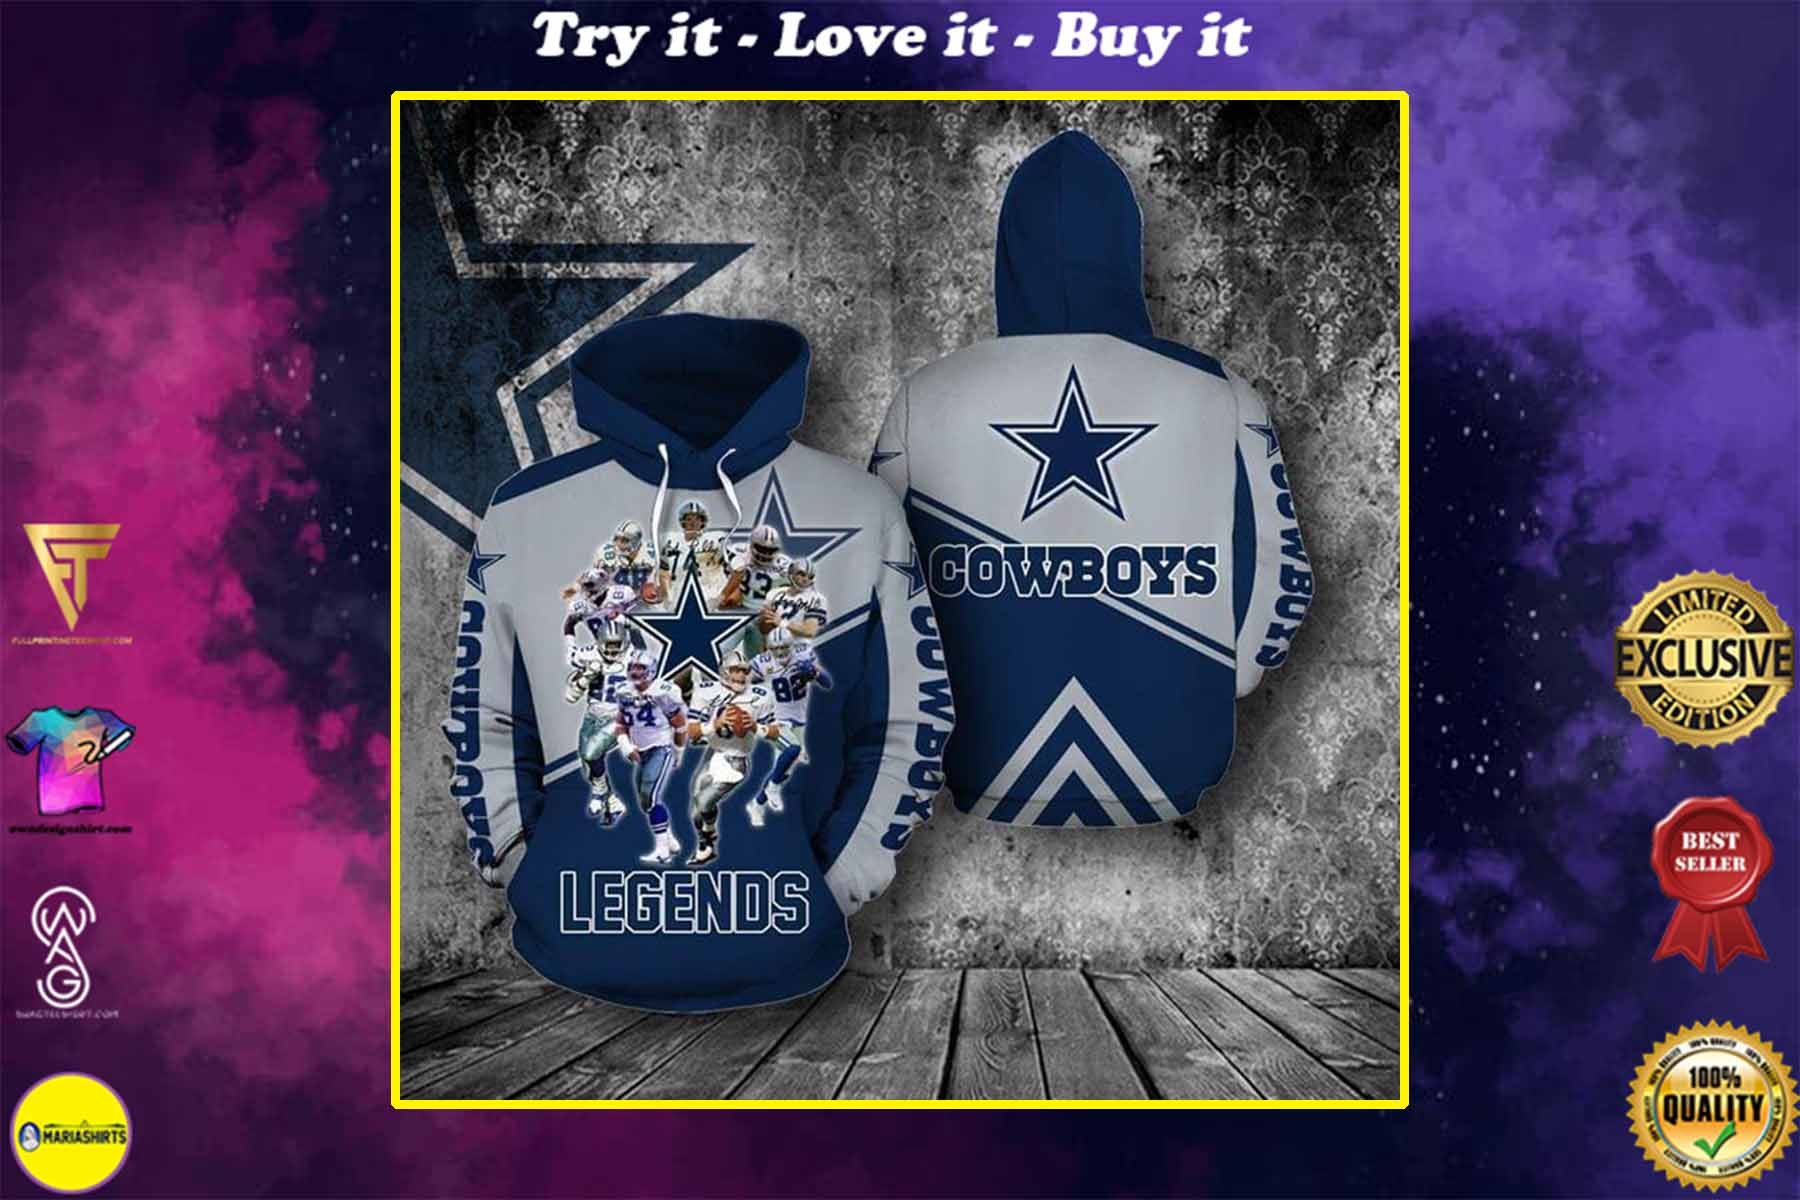 [highest selling] the dallas cowboys legends members full over printed shirt - maria